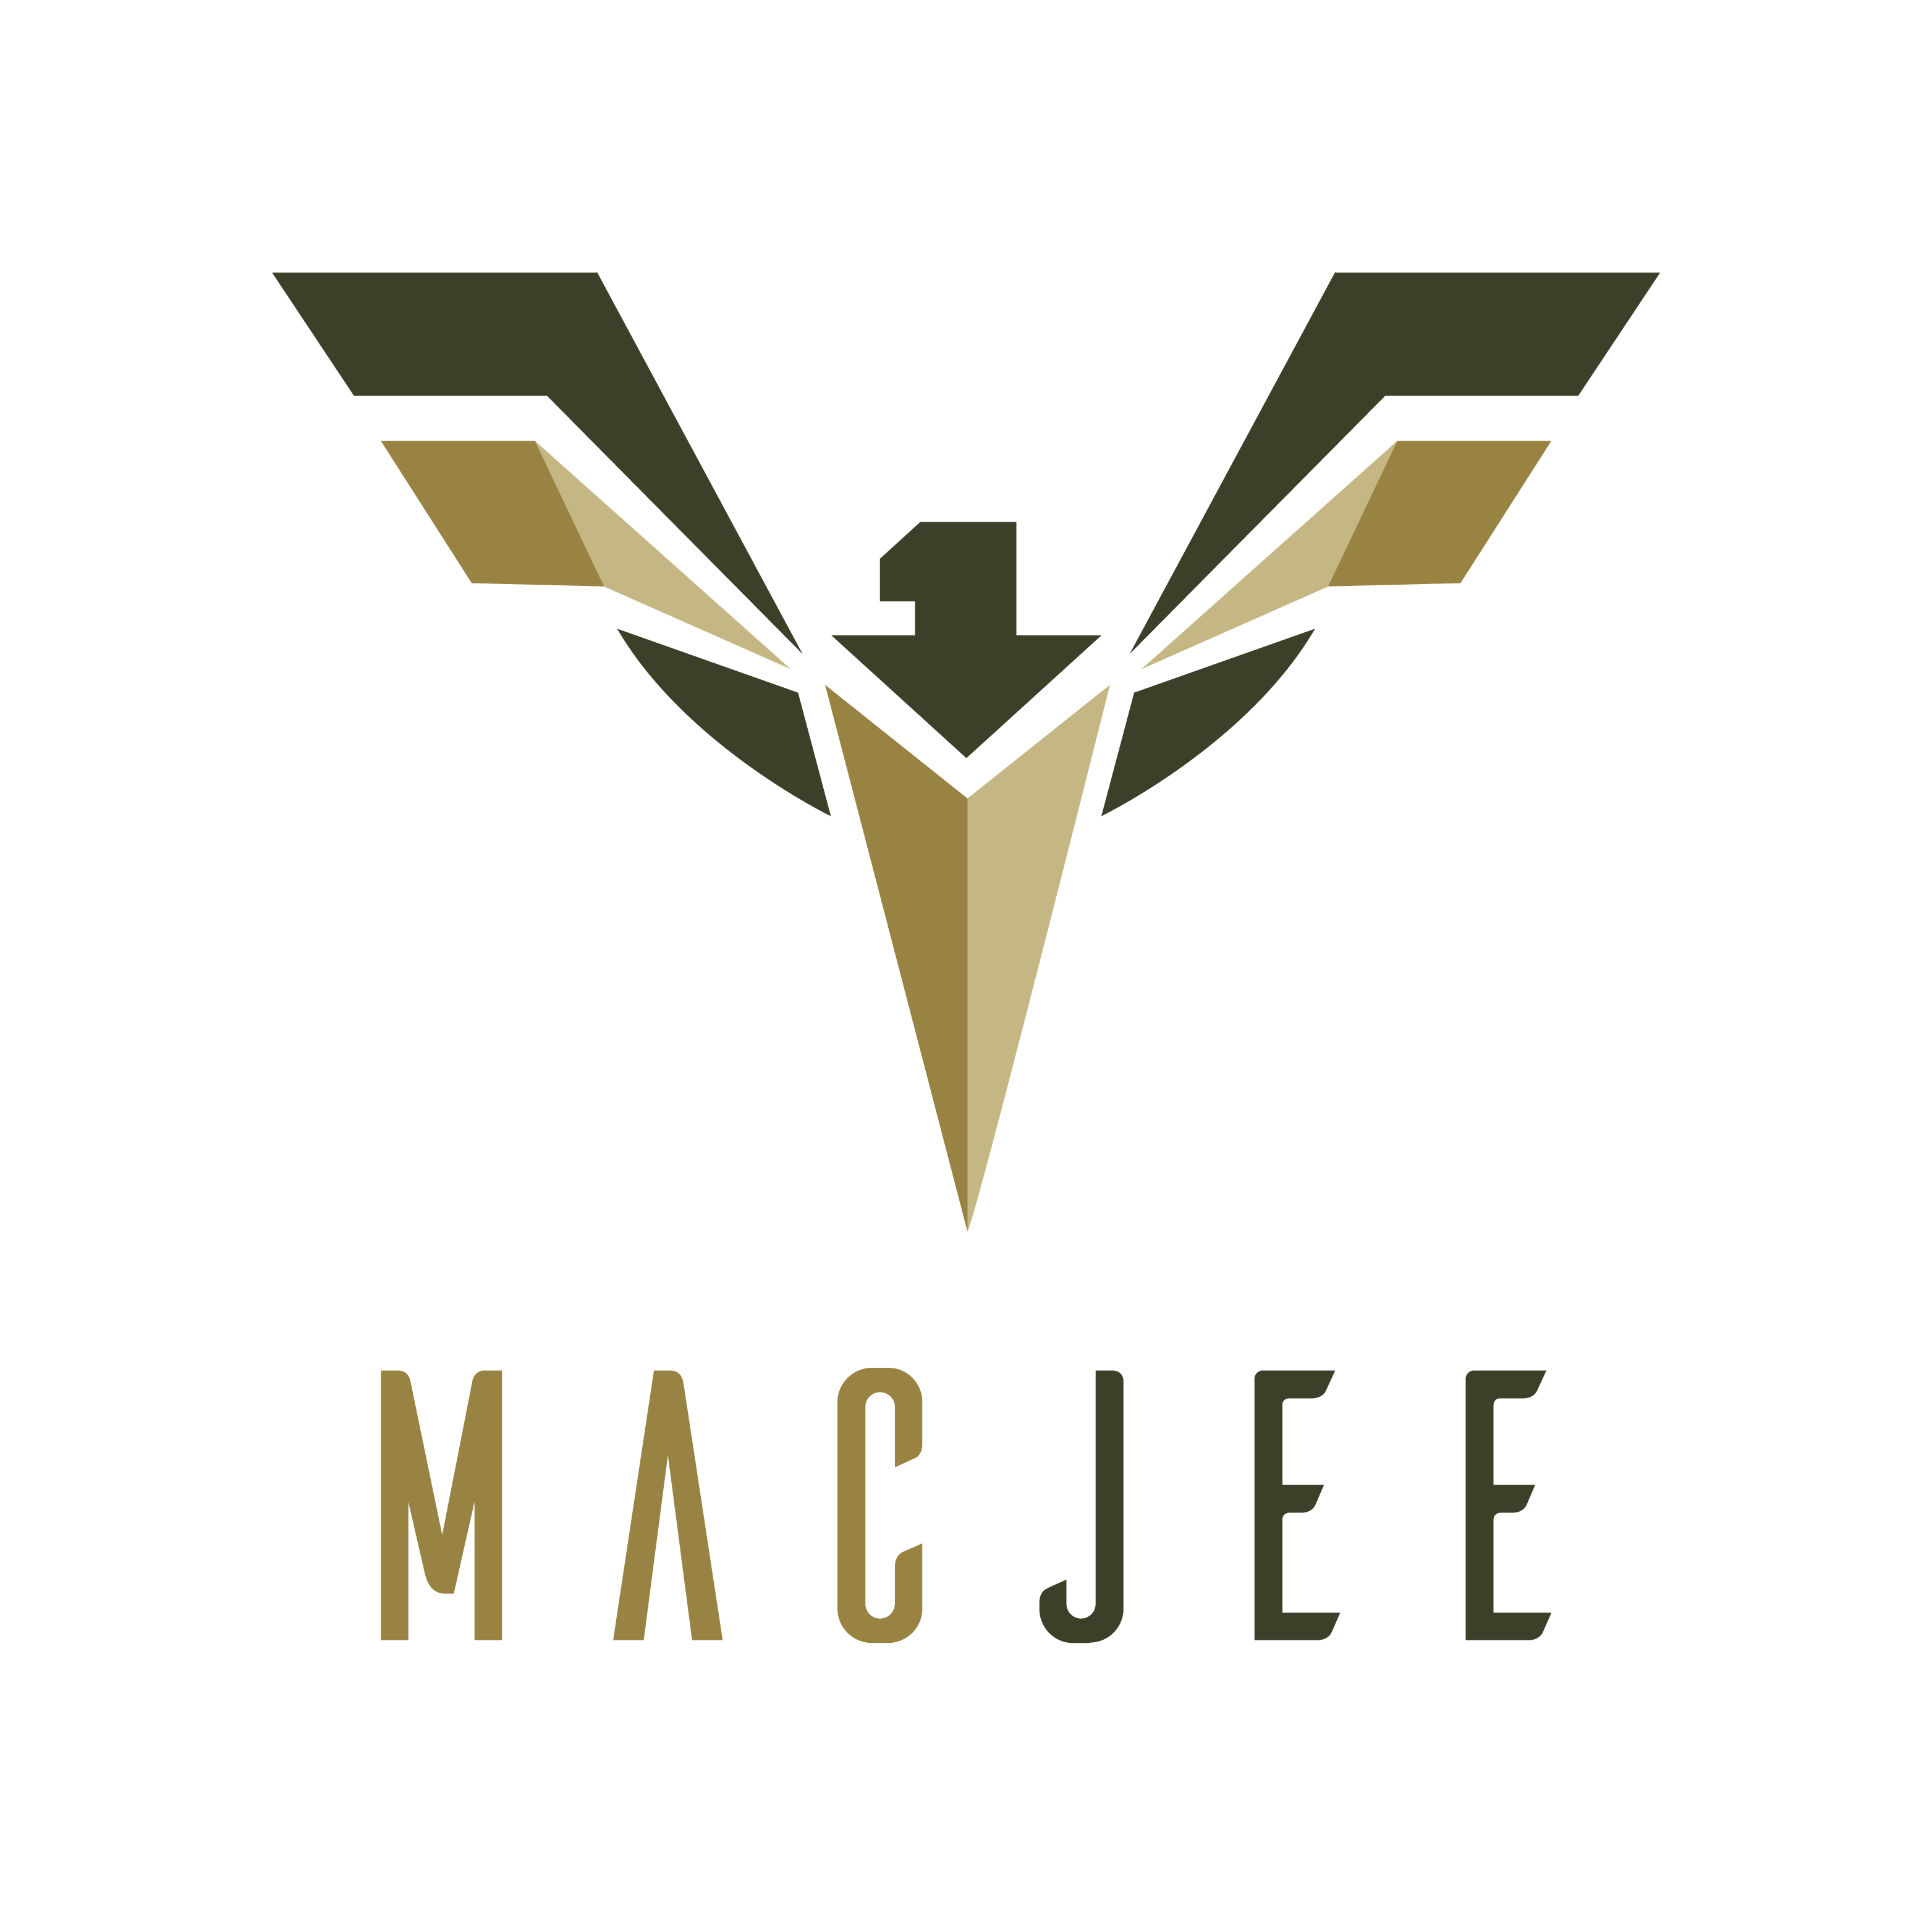 Established in 2007, Mac Jee is responsible for the development, manufacture and improvement of defense systems.